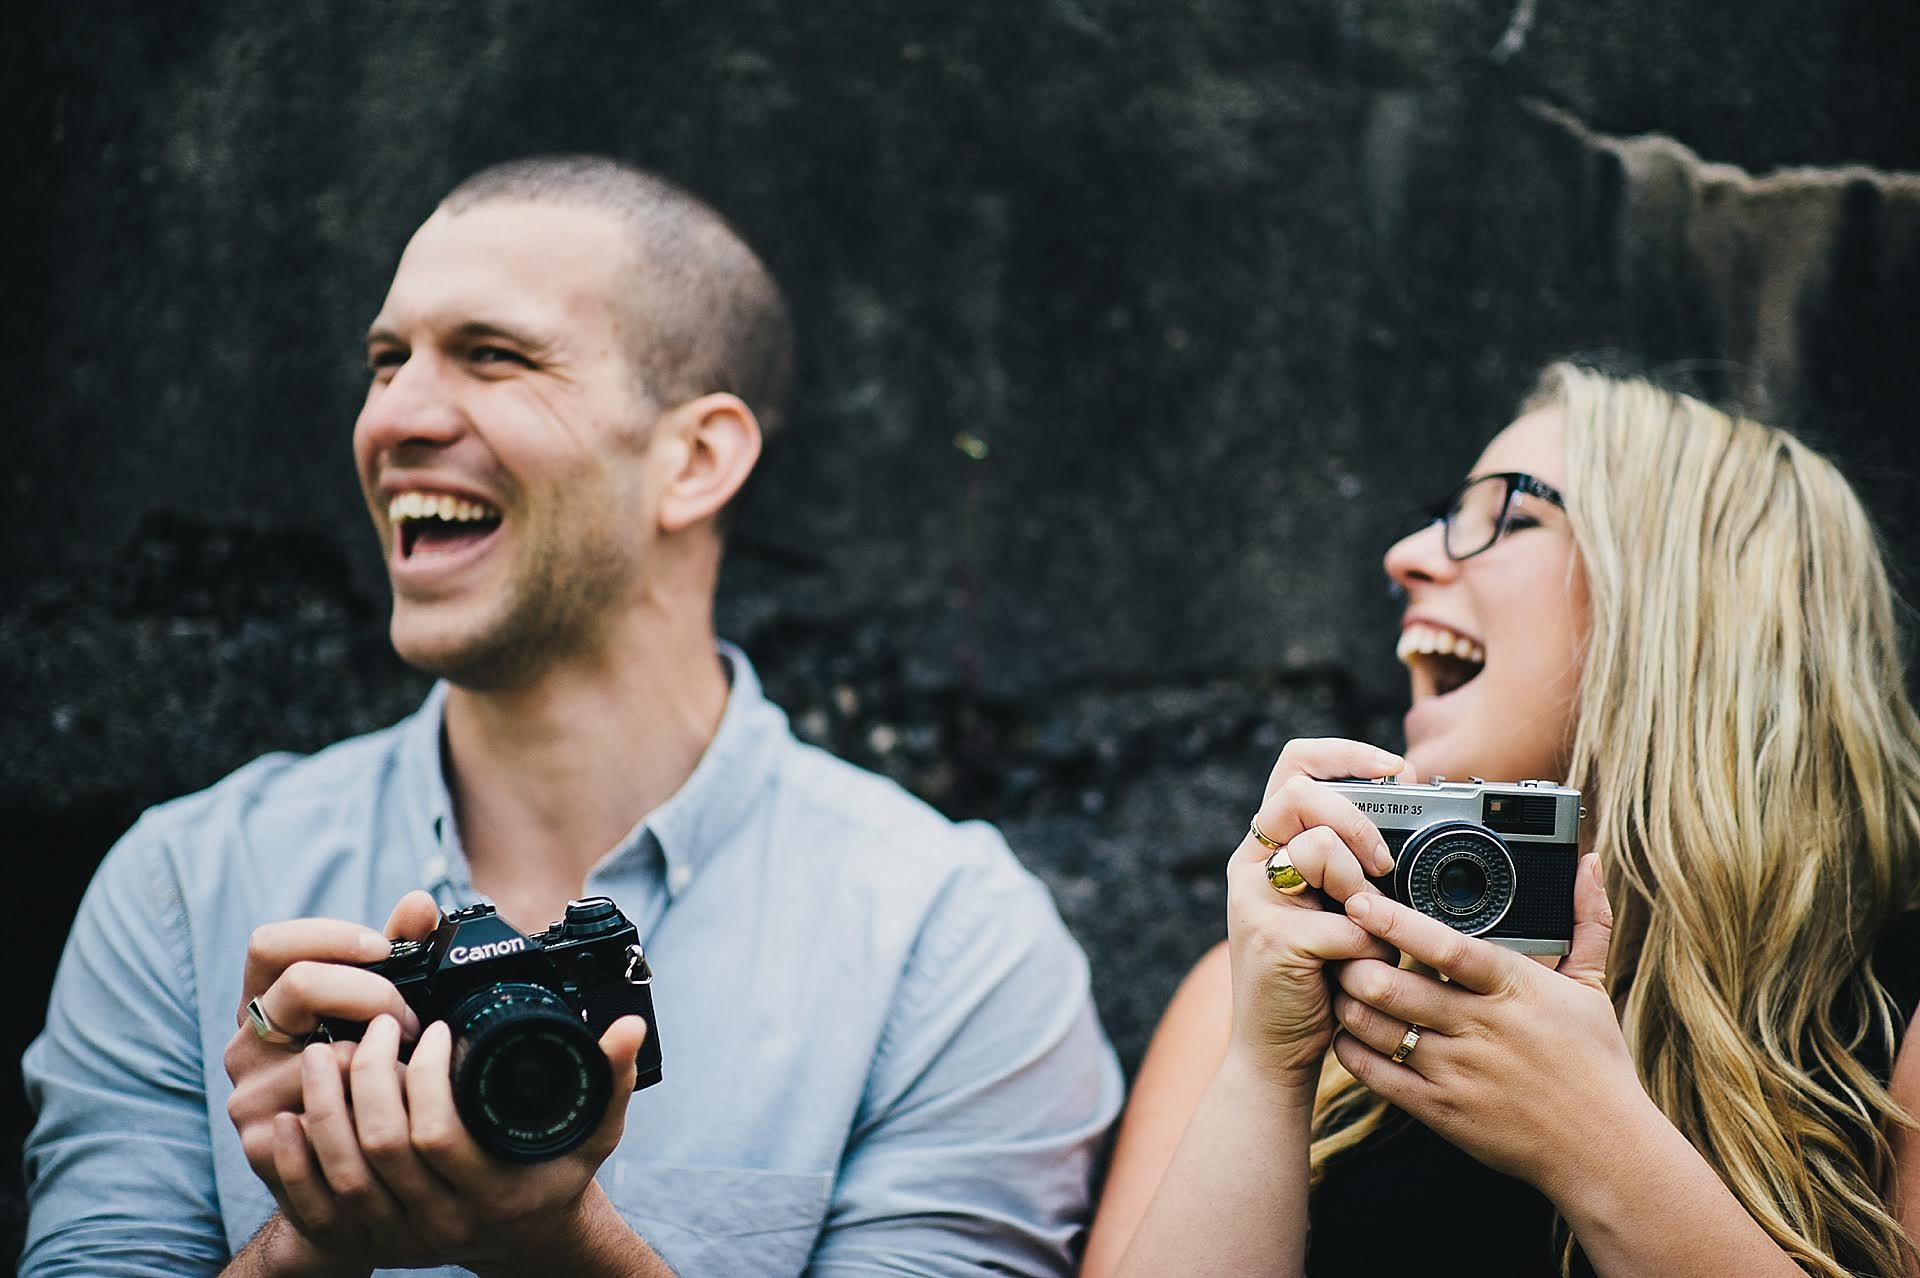 aaron & shannon, flothemes, love stories behind the lens, The Official Photographers